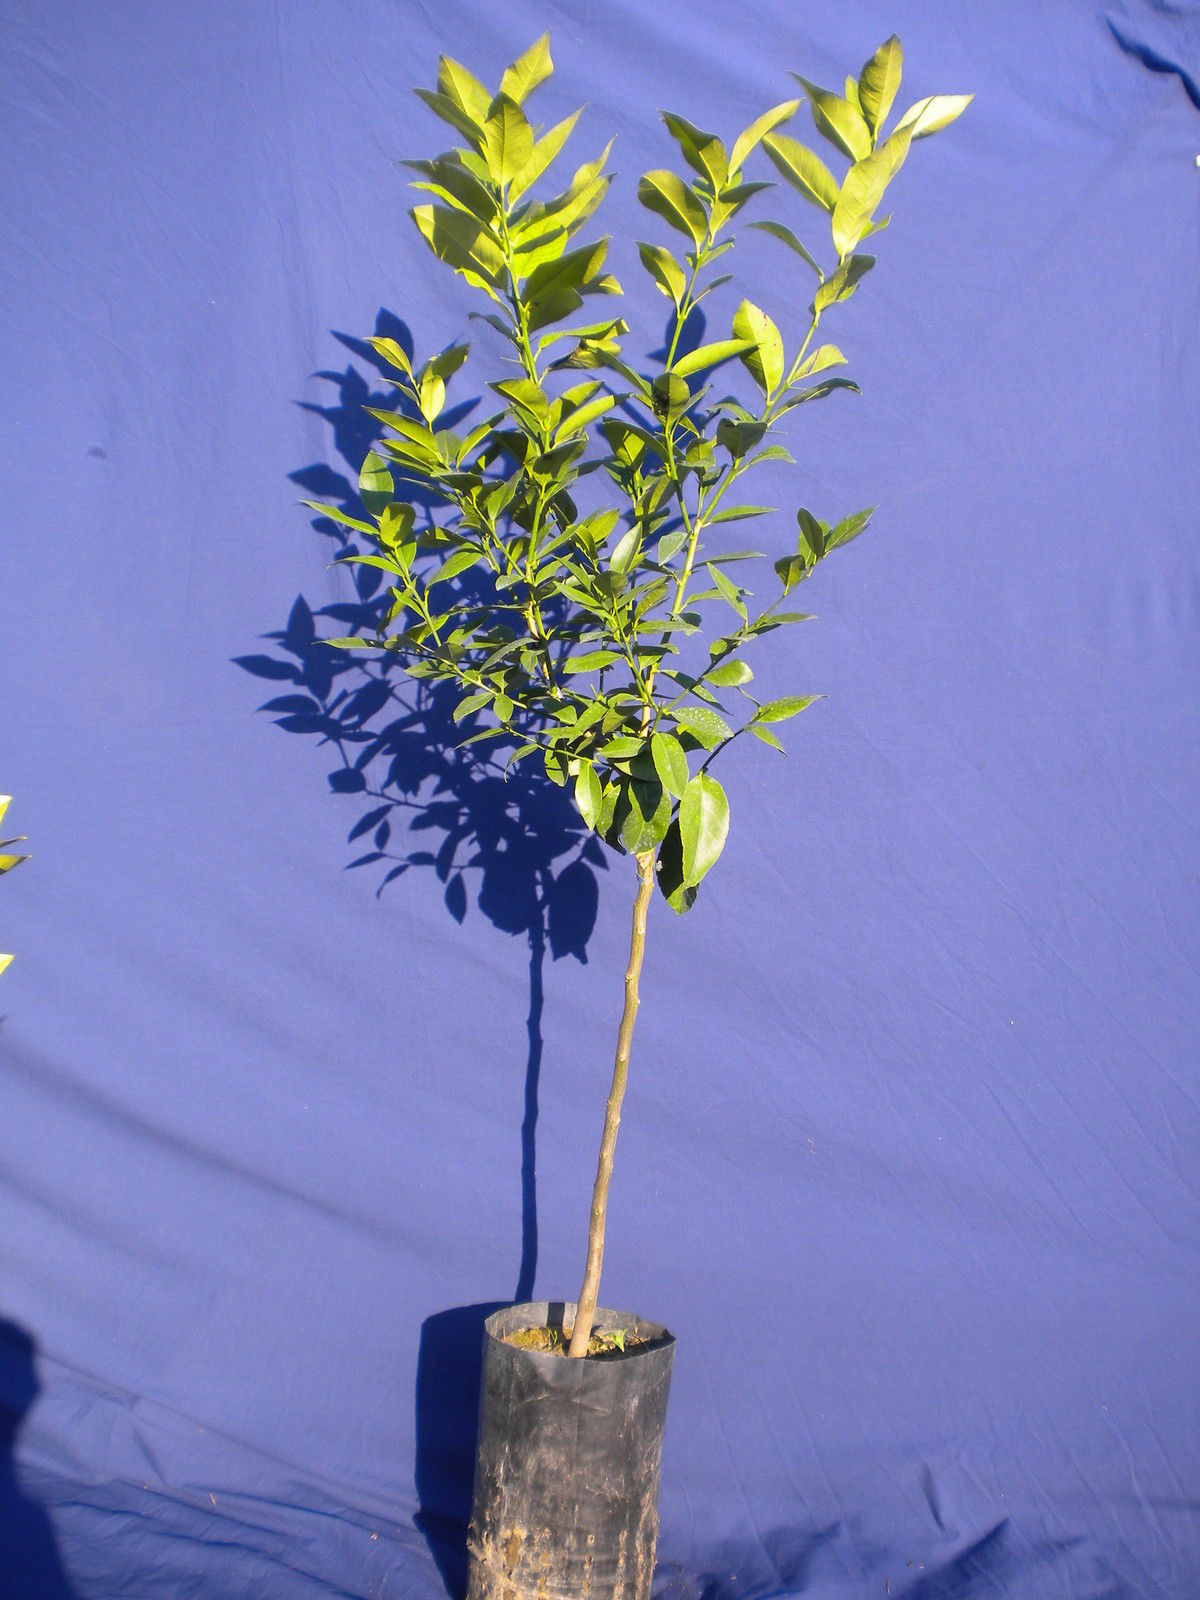 CITRUS LIMON var. limone arancio Orange lemon pianta plant<b> fitocella  </b>altezza 100-120 cm